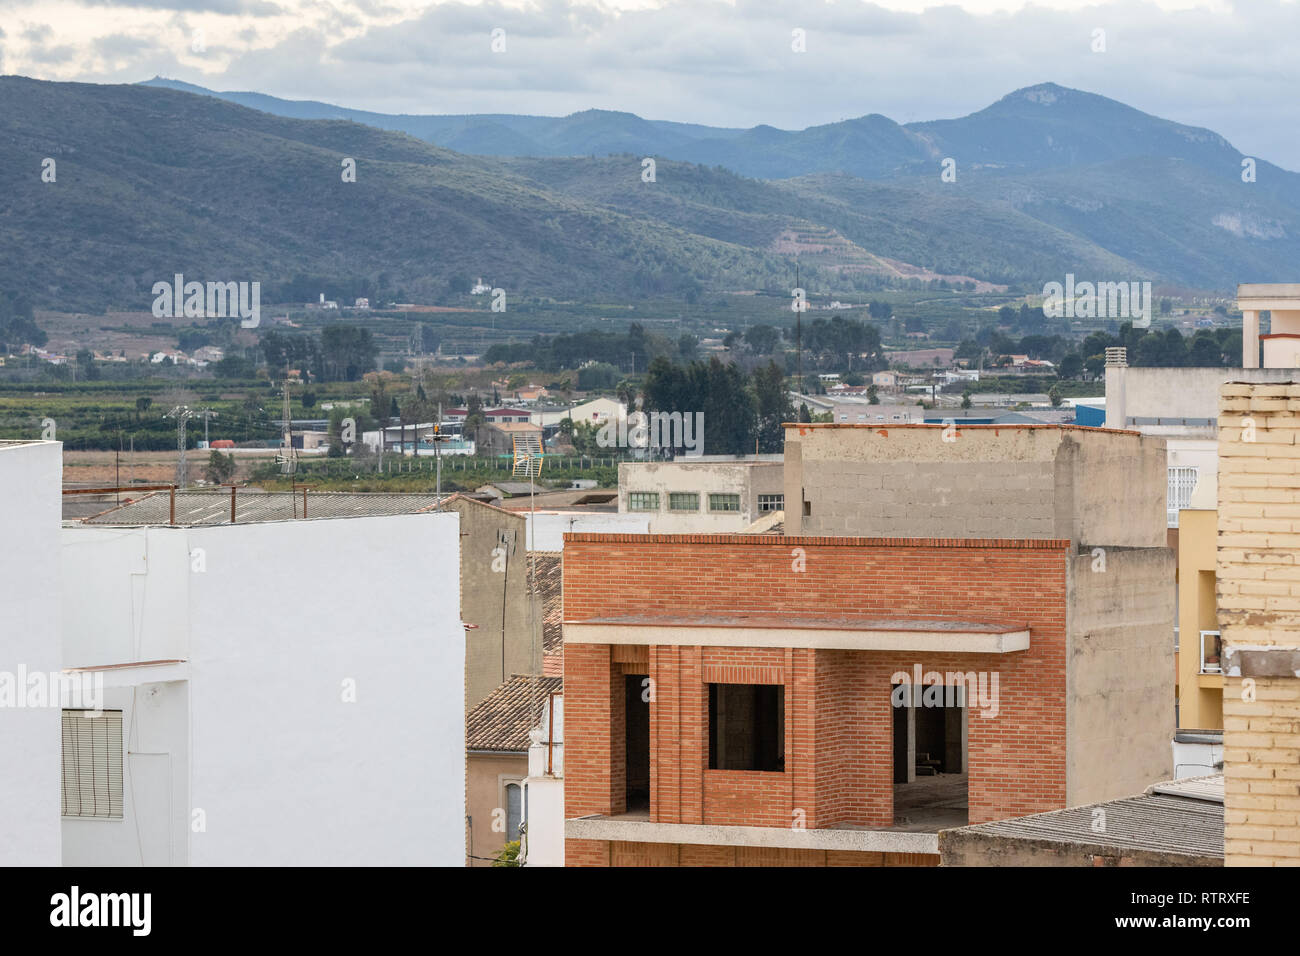 Under construction residental building in small town in Spain, Canals. Stock Photo